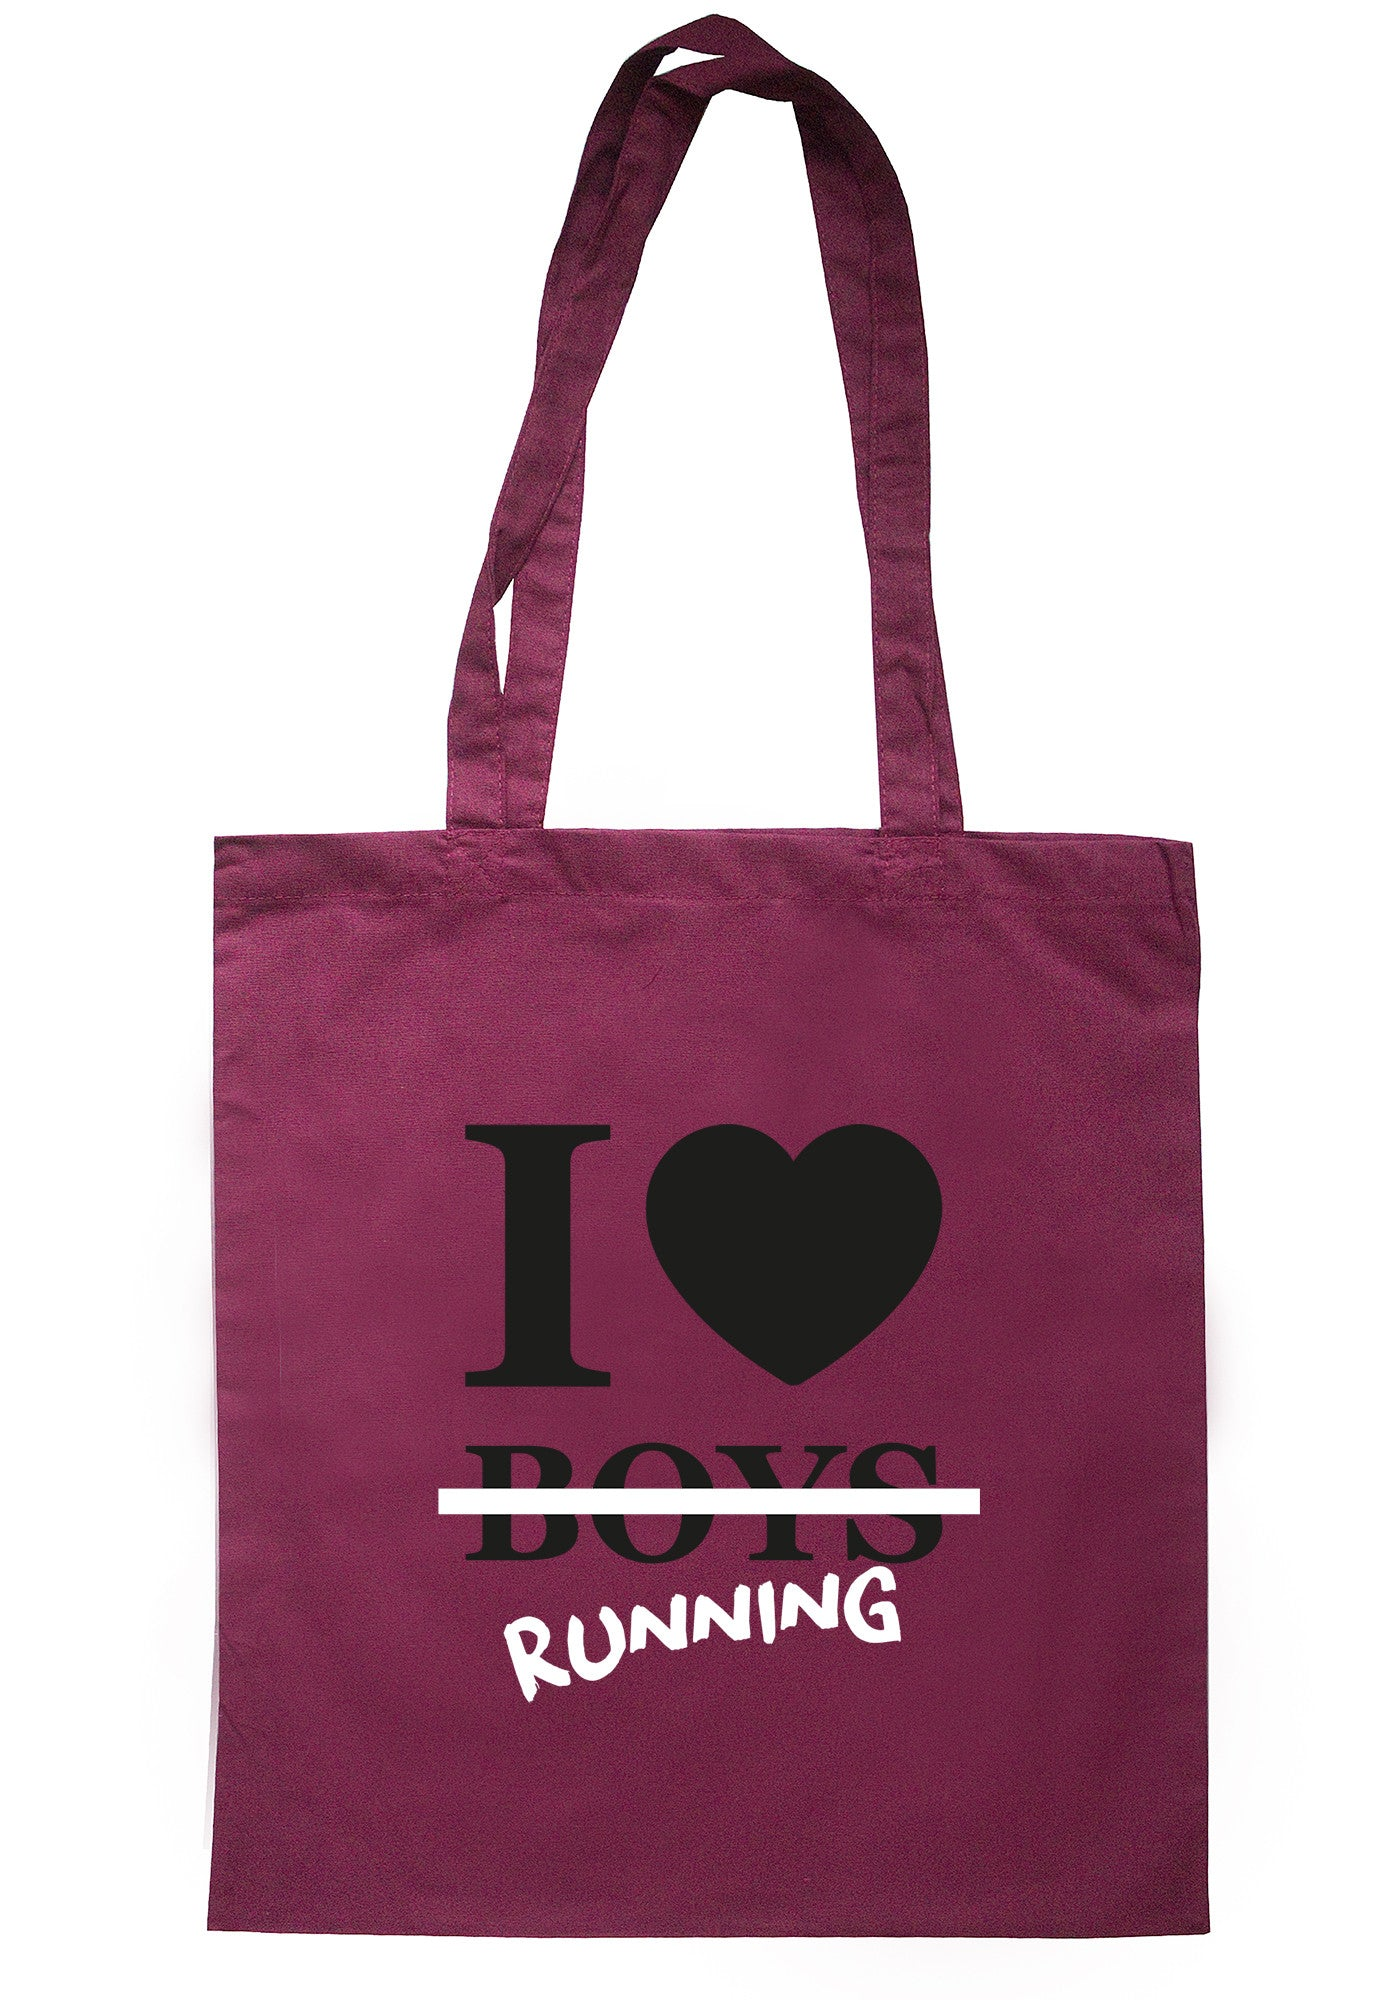 I Love Running Not Boys Tote Bag TB0424 - Illustrated Identity Ltd.